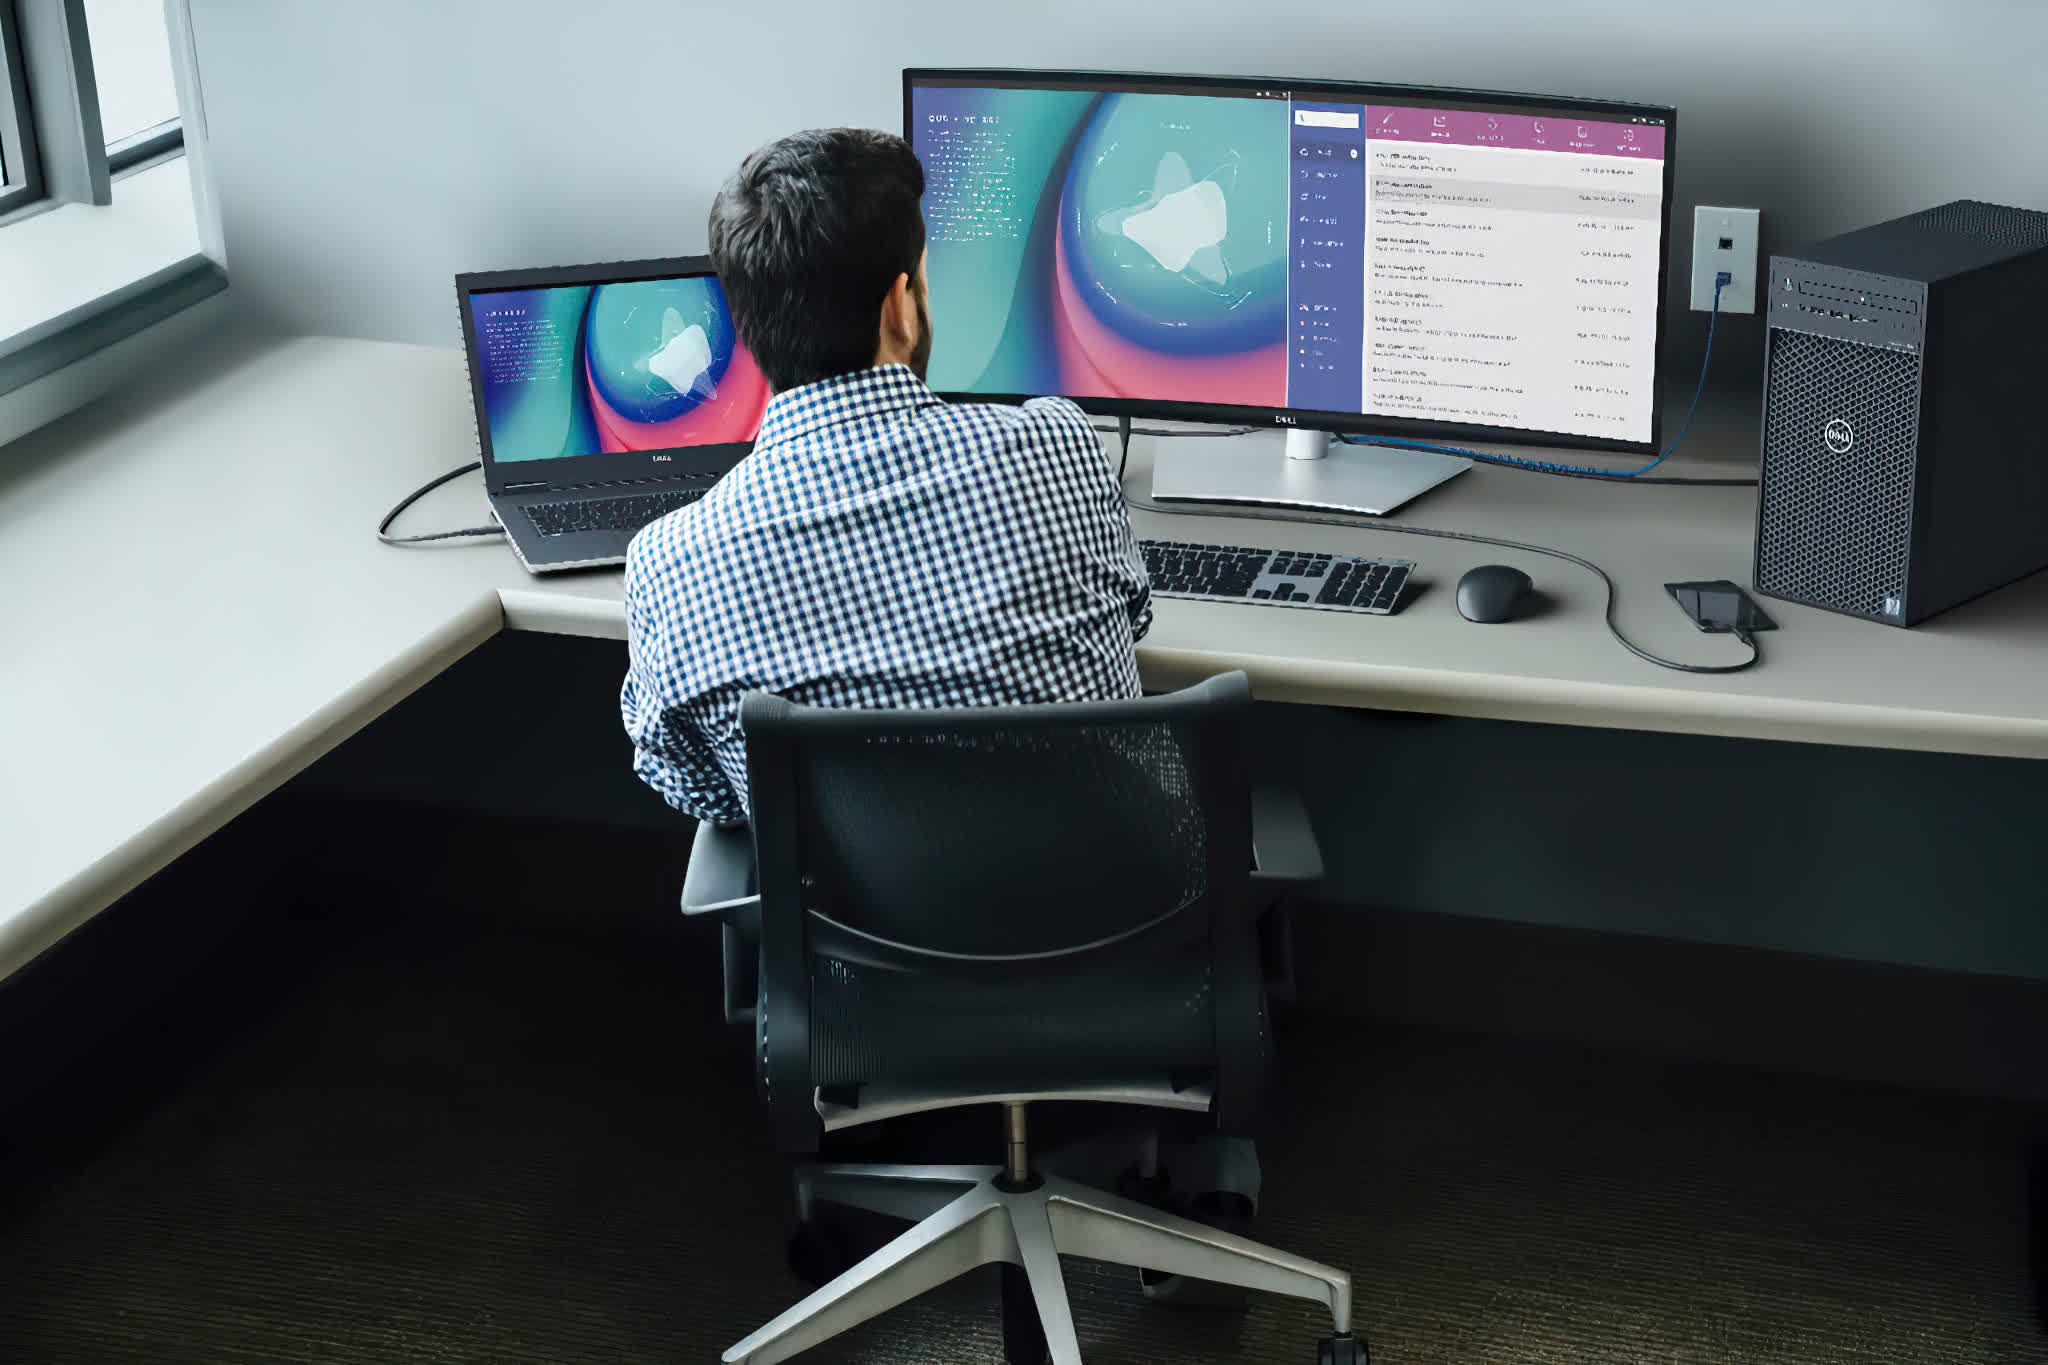 Dell UltraSharp monitors refresh: P-series with USB-C, mini-LED backlight, and more